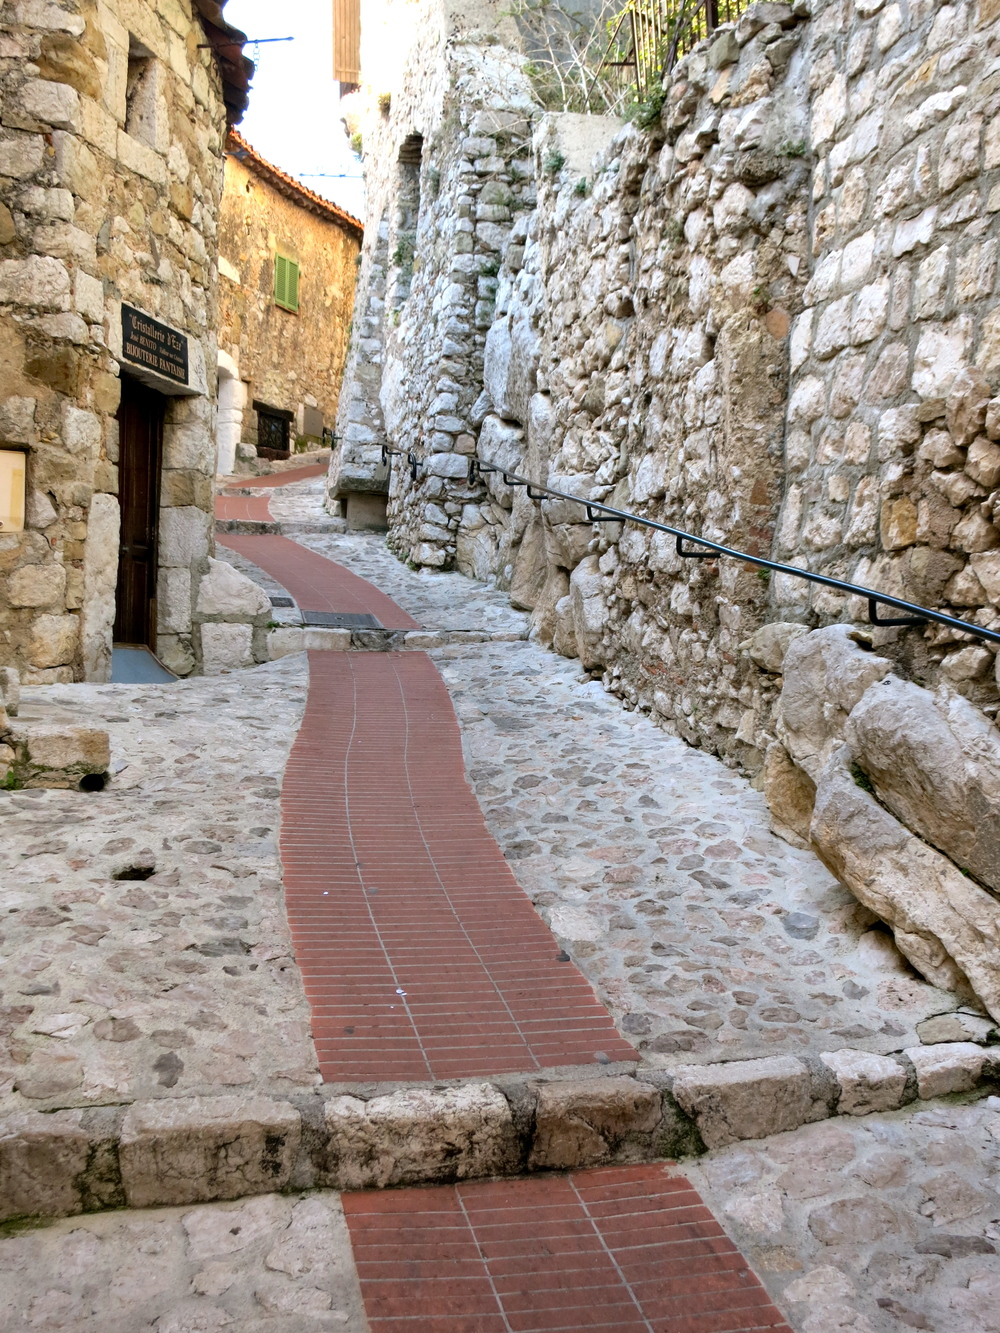 Handrails and a brick path help modern day tourists navigate the medieval village of Eze in the French Alps. © 2014 Gail Jessen